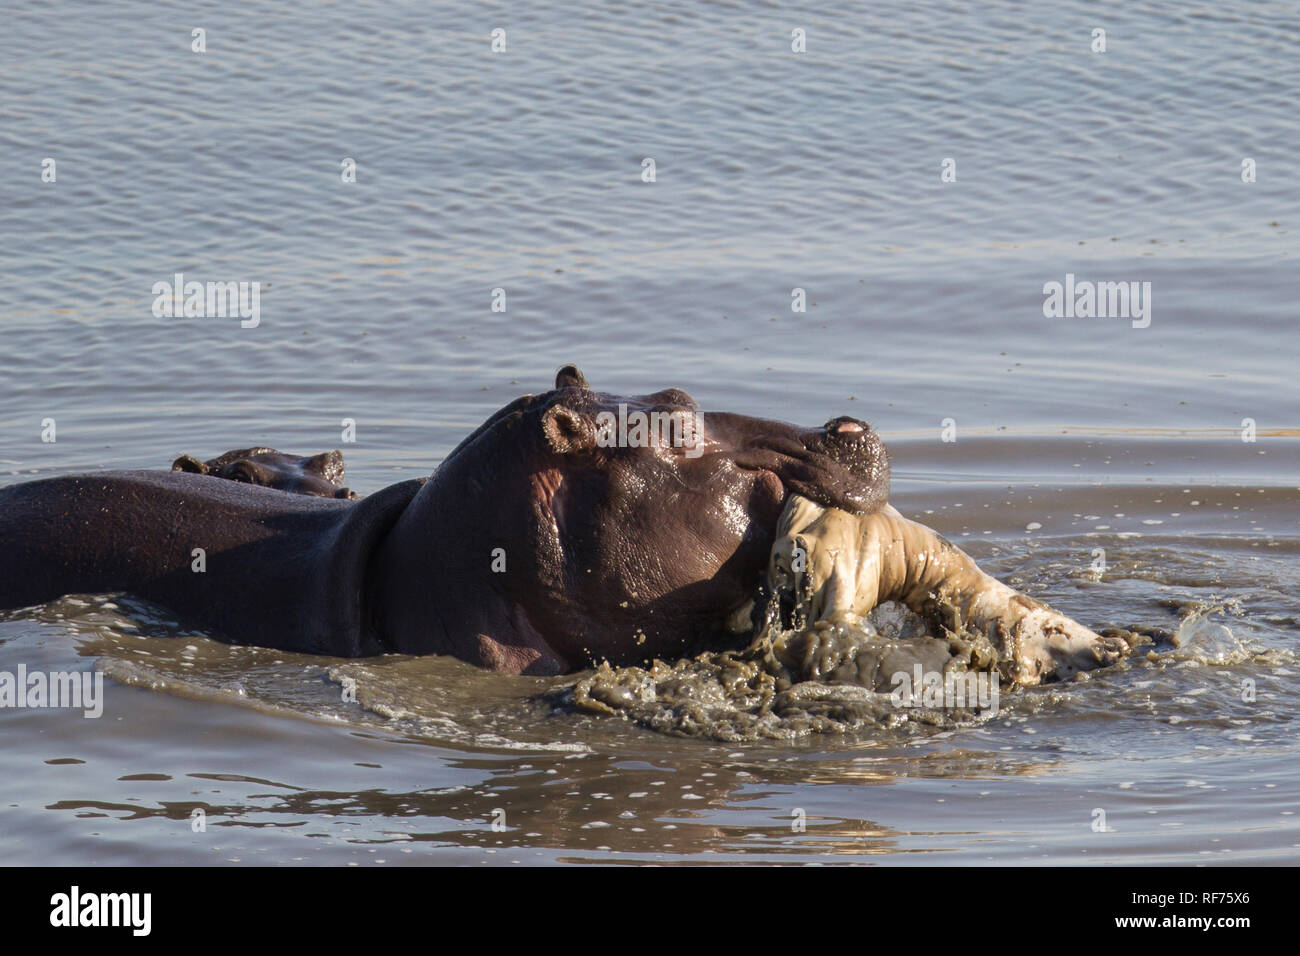 Hippos, Hippopotamus amphibius, are vegetarians, but they occasionally eat meat, scavenging from carcasses, or playing with dead animals. Stock Photo